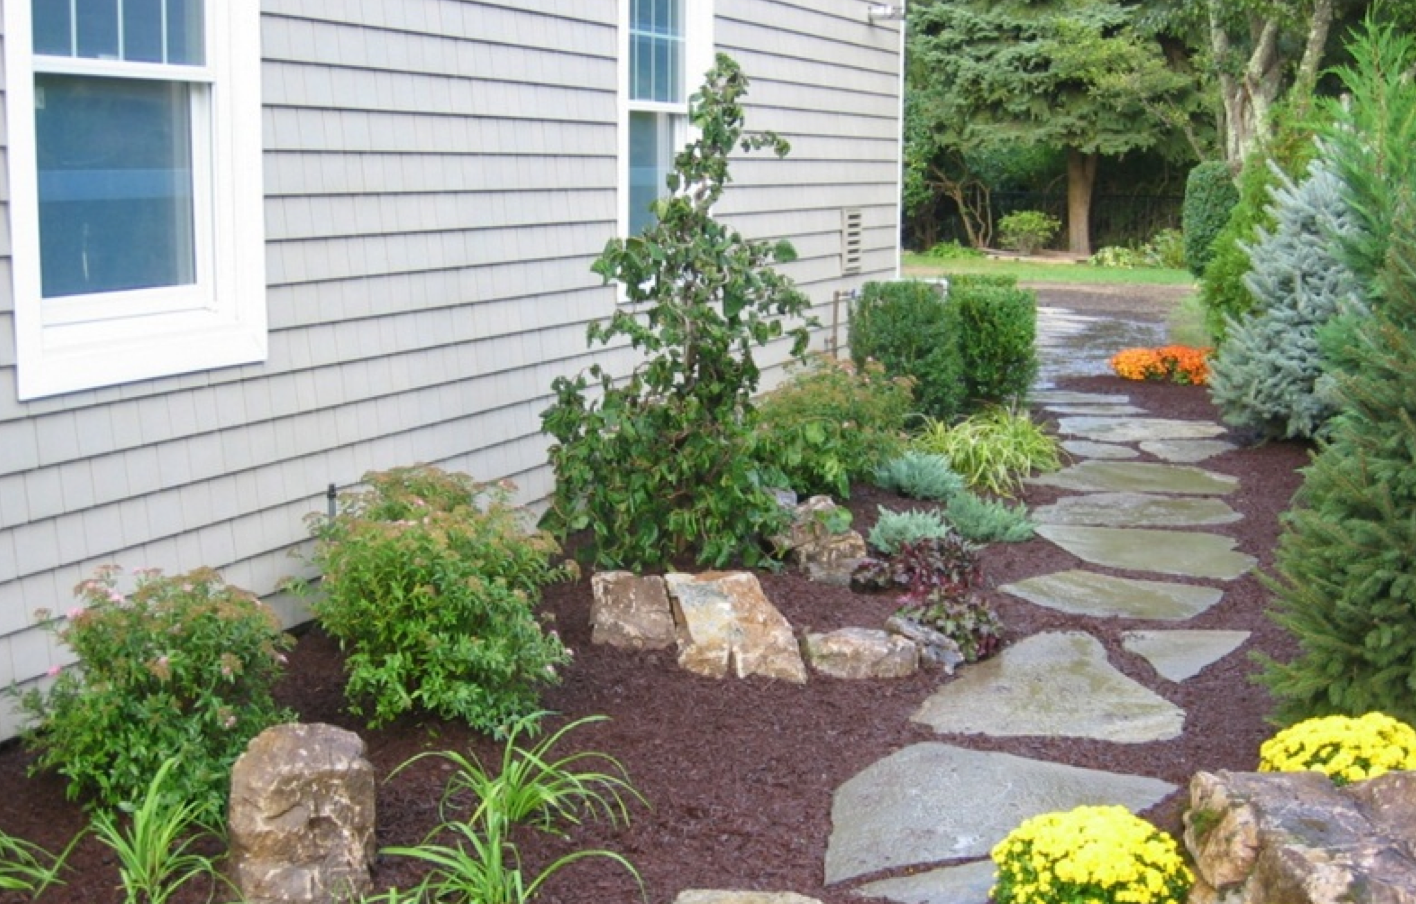 Basics landscaping co inc deer park new york ny for Basic landscaping